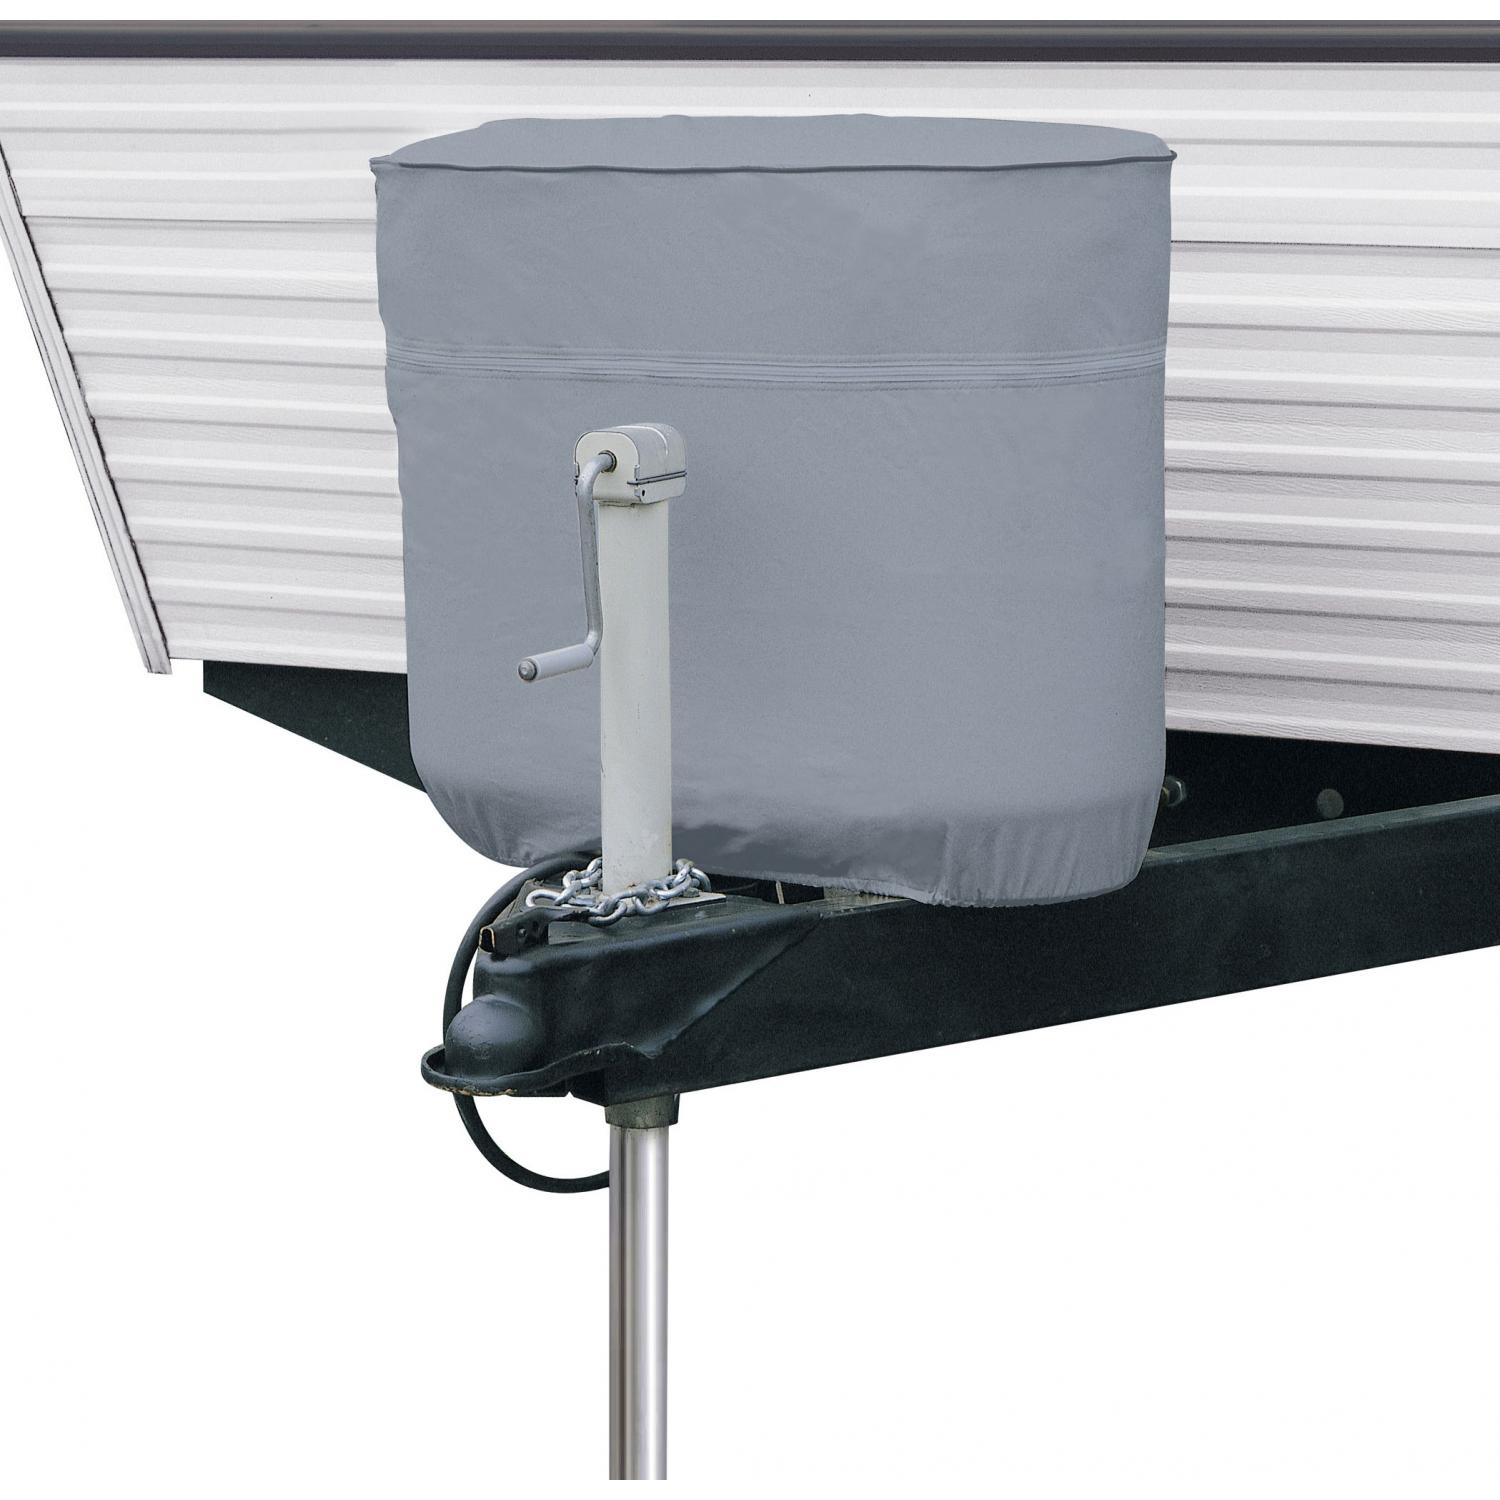 Classic Accessories RV Tank Cover - Grey - Model 2